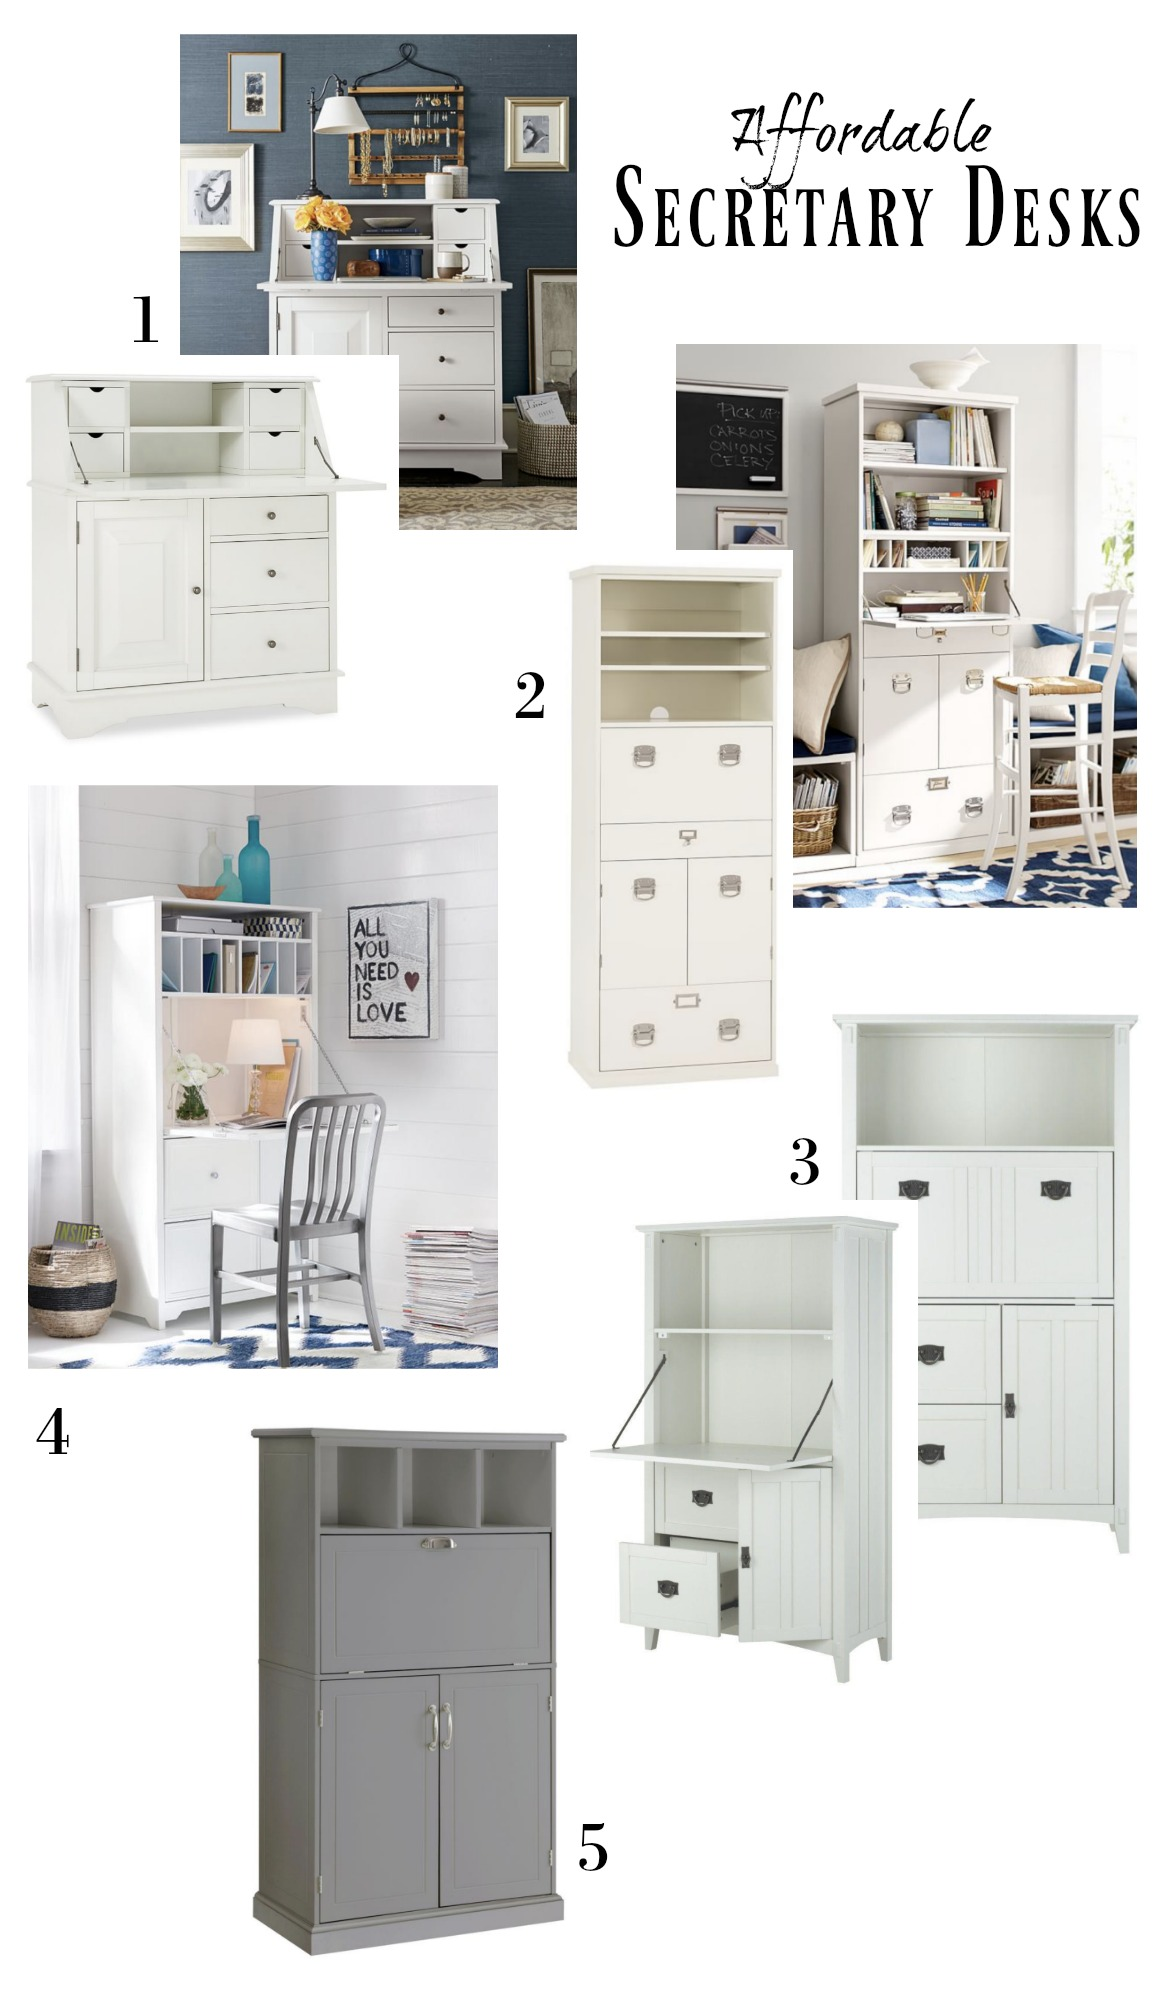 Secretary Desks- Afforable Desk Options for Small Spaces